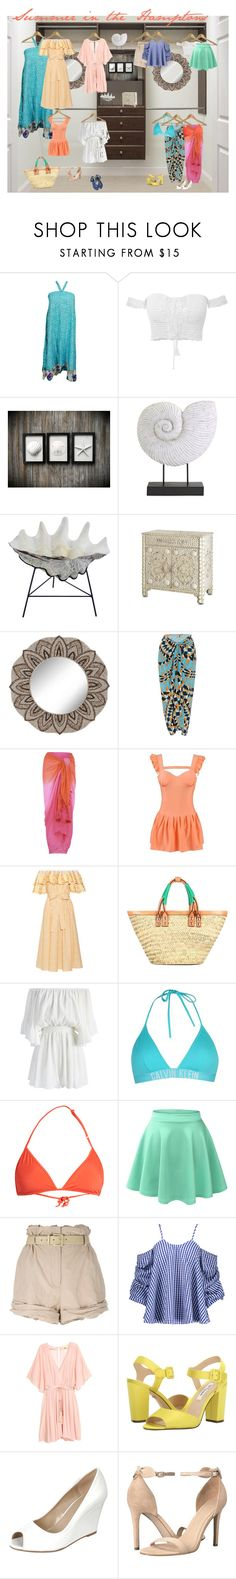 """The closet series...summer in the Hamptons"" by kristinsfashion ❤ liked on Polyvore featuring Martha Stewart, IMAX Corporation, Universal Lighting and Decor, Lenny, Monsoon, Gül Hürgel, Balenciaga, Chicwish, Calvin Klein and Bower"